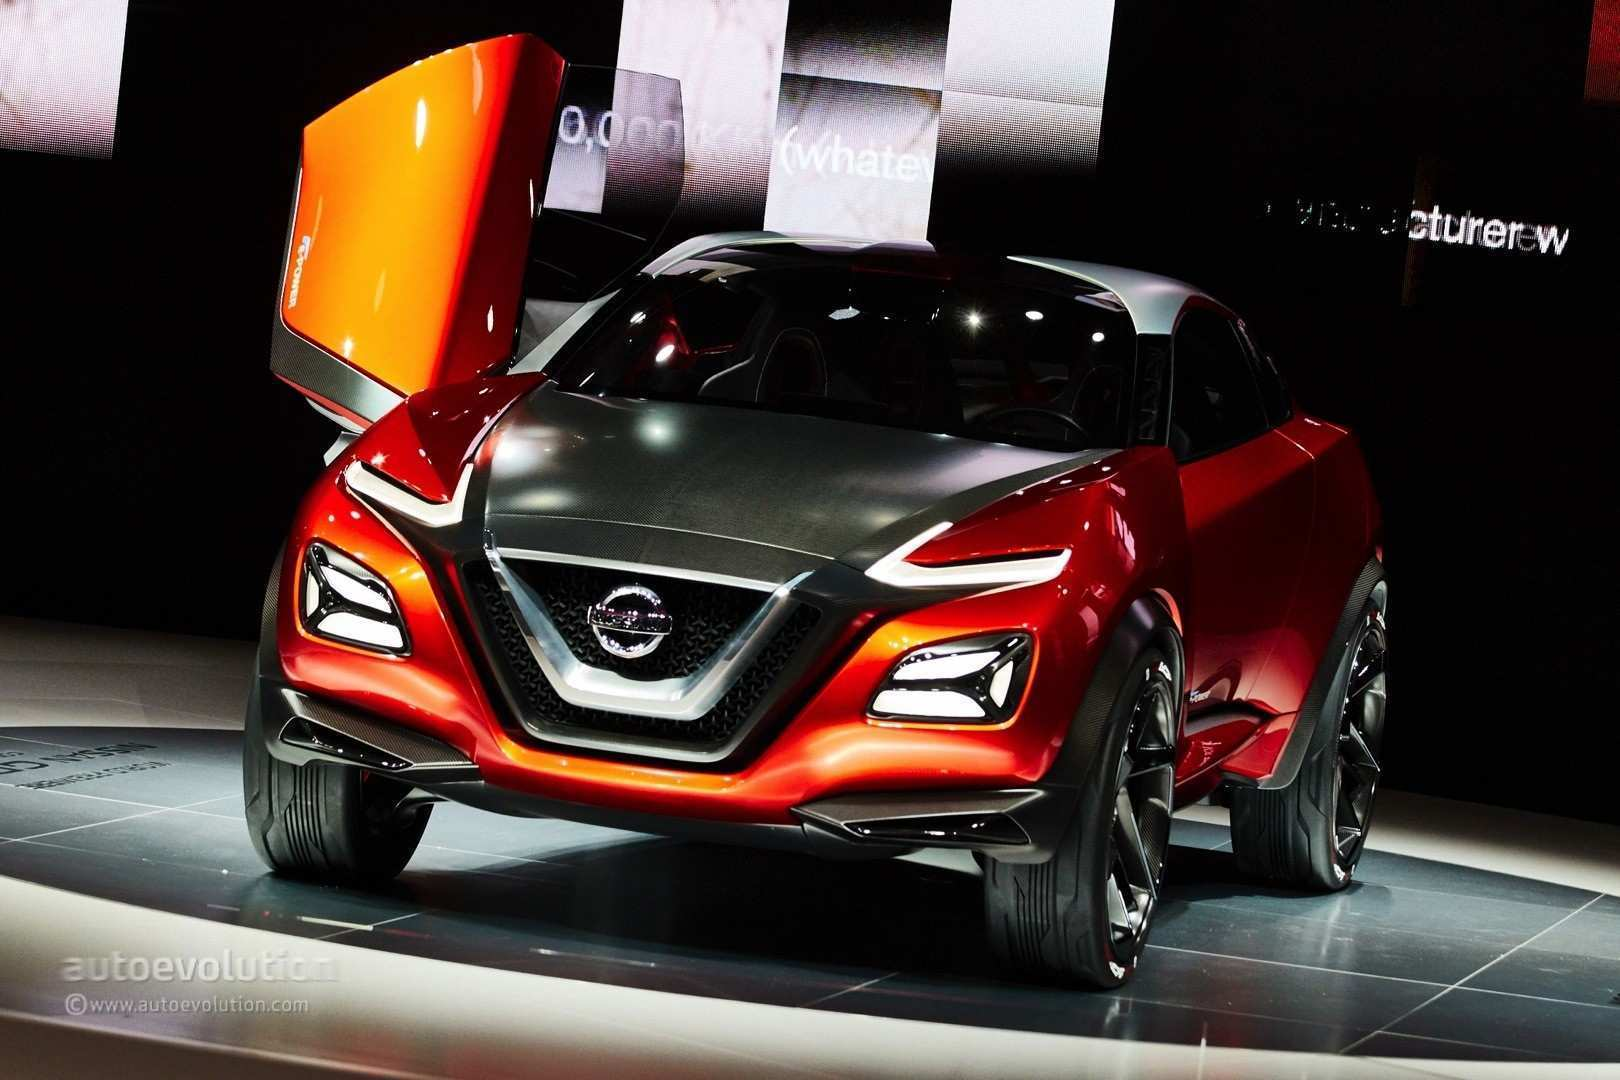 28 Great Nissan Juke Nismo 2020 Research New with Nissan Juke Nismo 2020